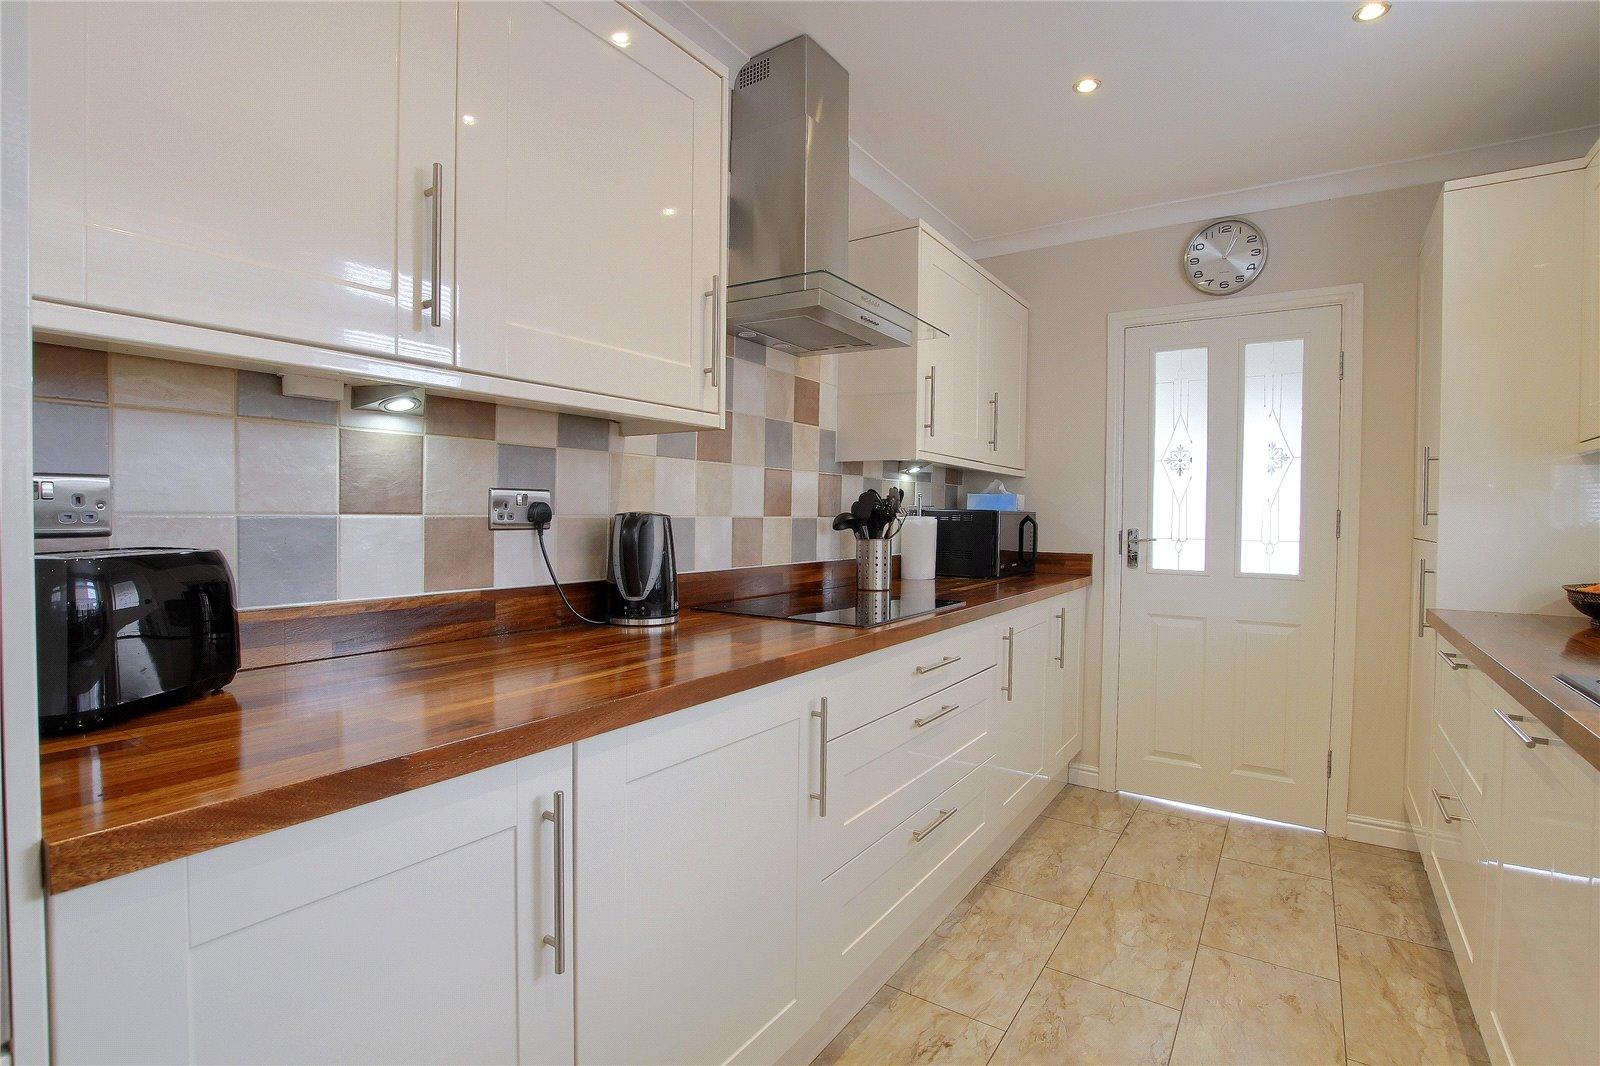 4 bed house for sale in Oldford Crescent, Acklam  - Property Image 15